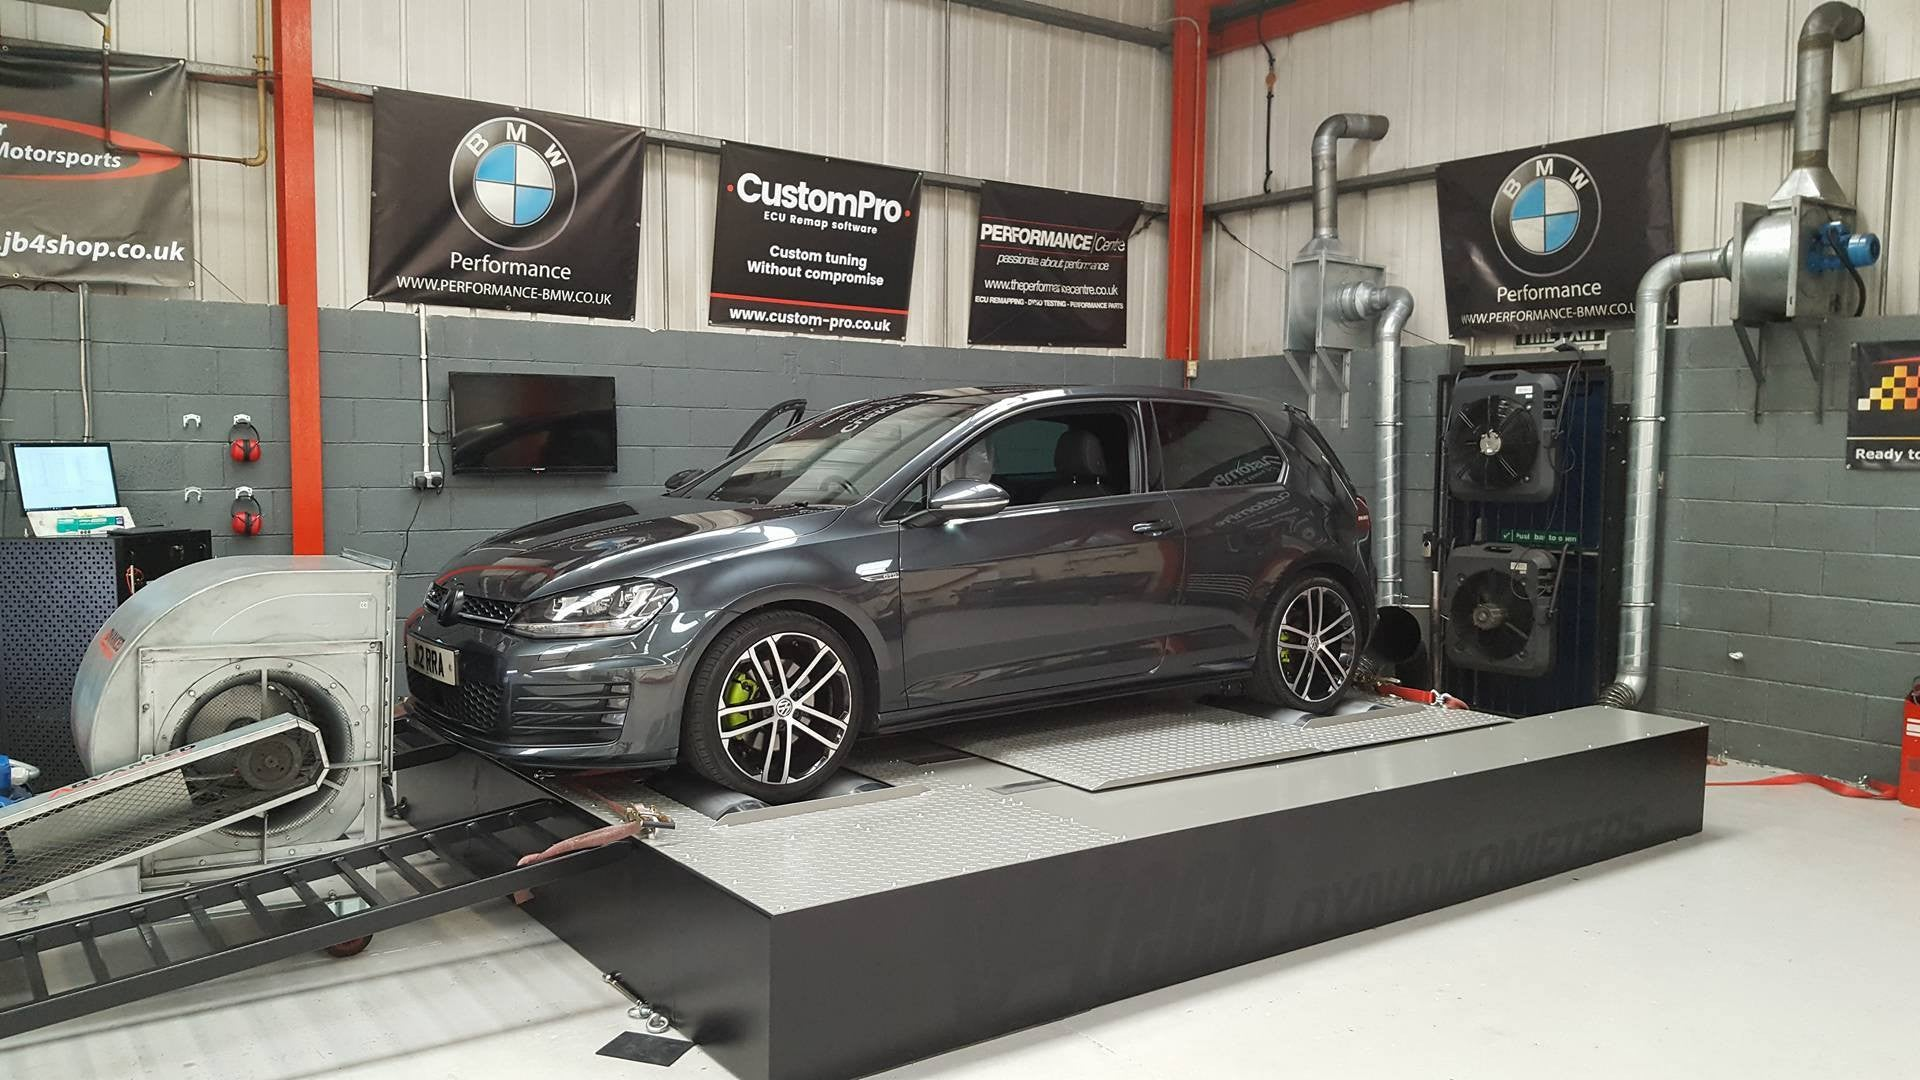 Volkswagen Golf GTD - CustomPro remap